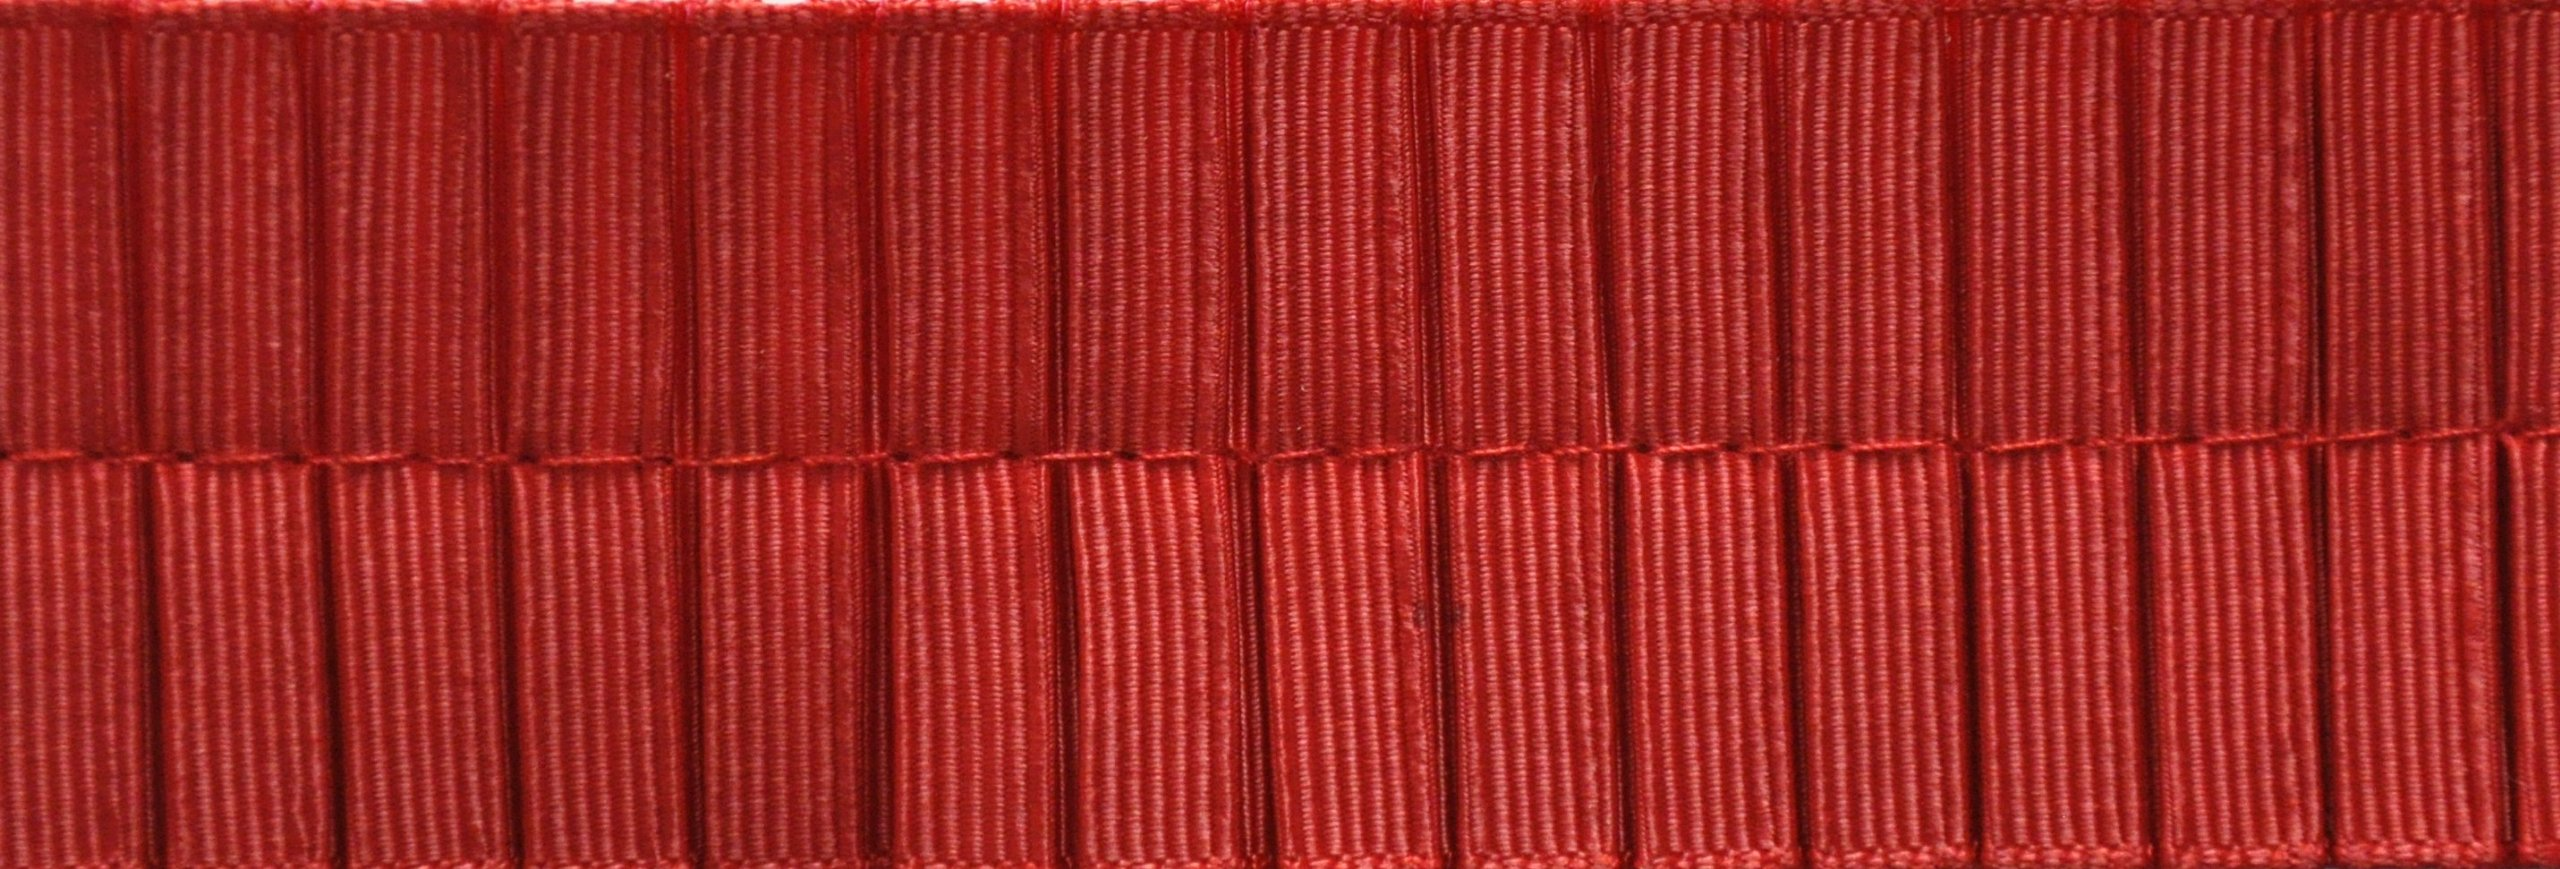 PLEATED TRIM Boxpleated Grosgrain Ribbon Roll, Red, 25-Yard by PLEATED TRIM